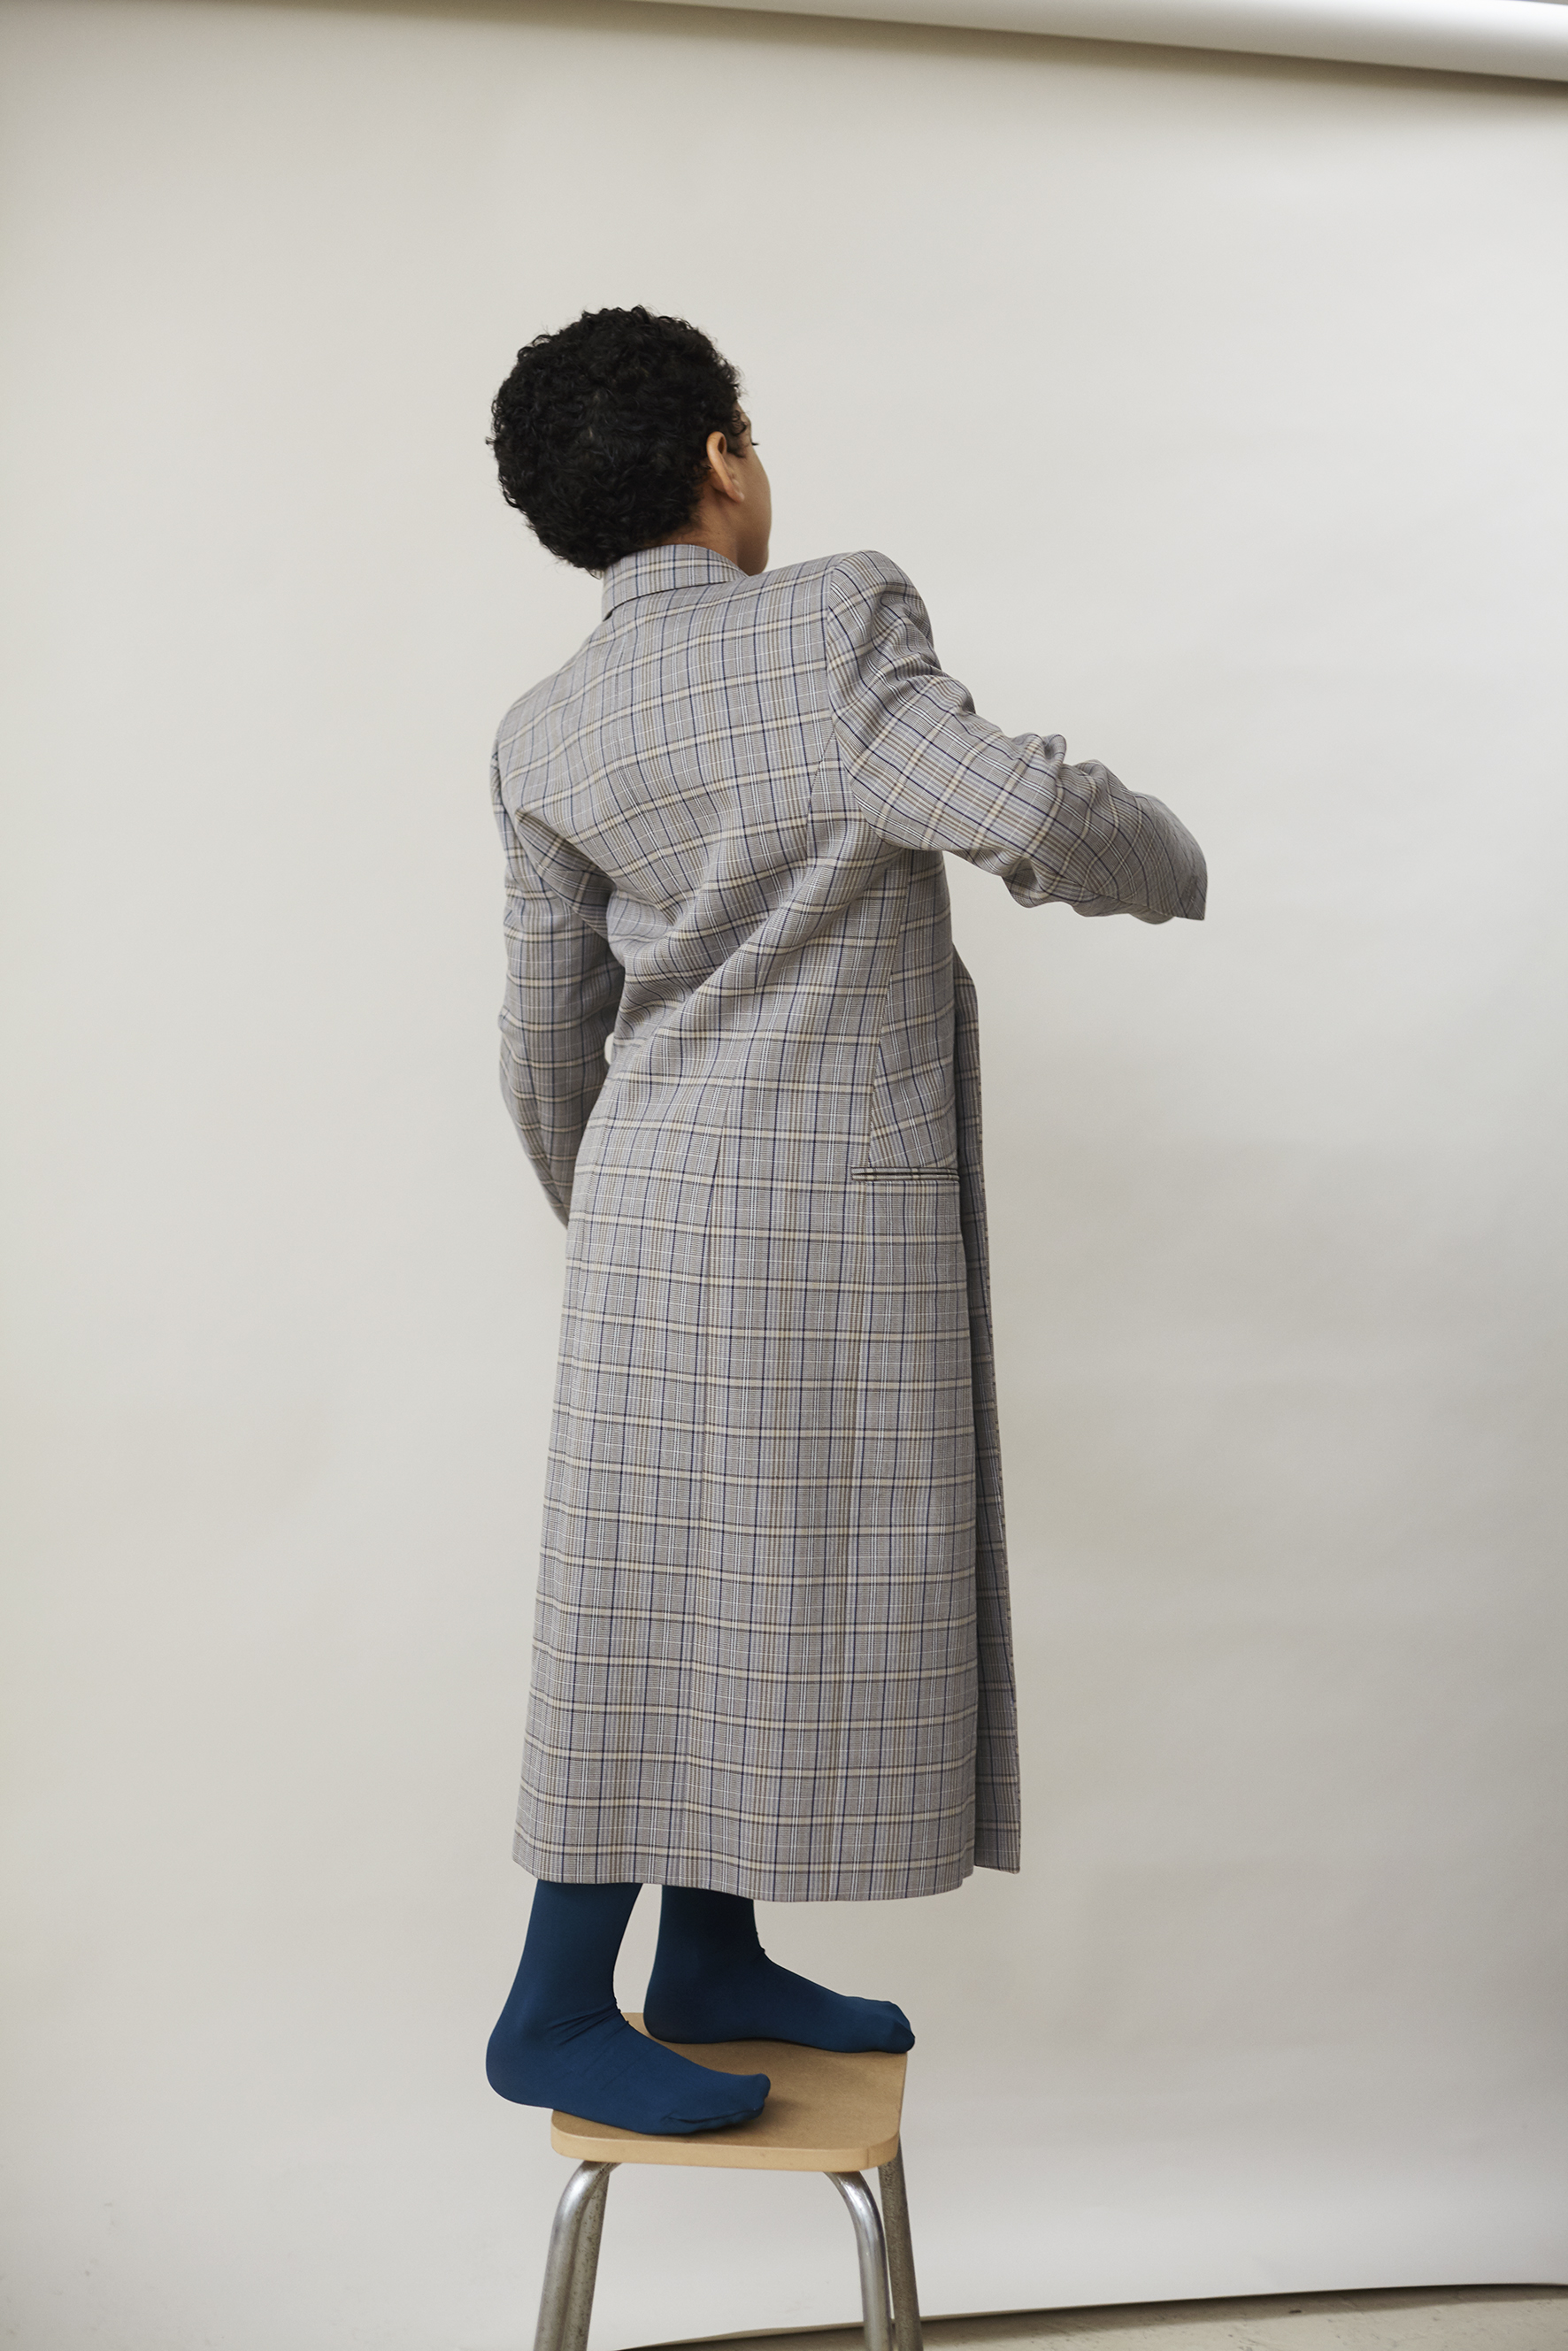 Double breasted checkered coat and yellow popeline cotton shirt BALENCIAGA, blue satin tights WOLFORD.